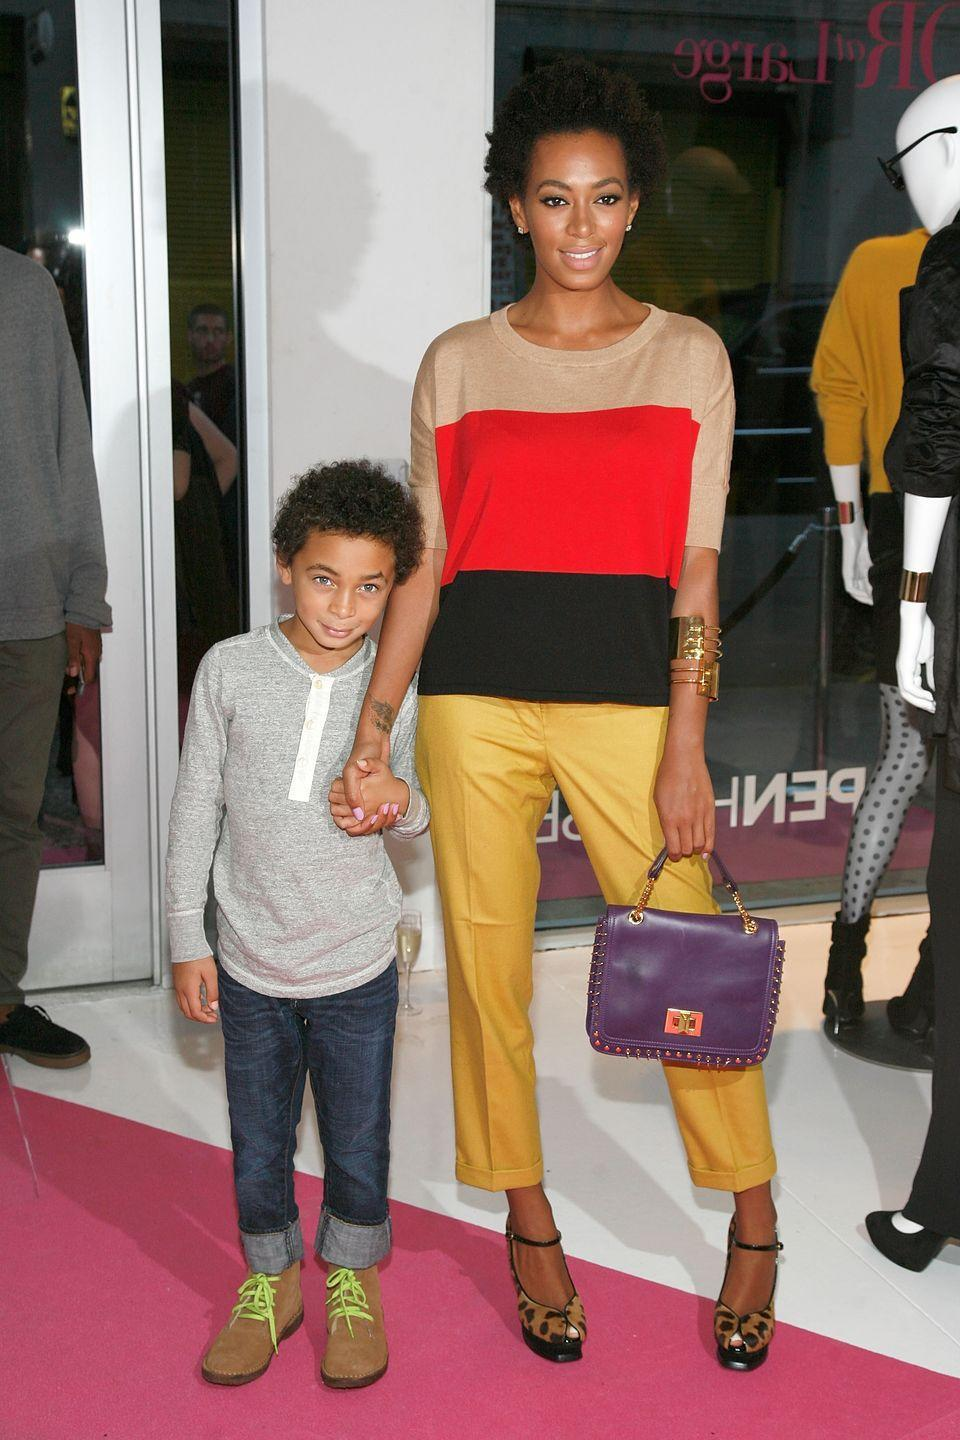 """<p>Blue Ivy has an older cousin—his name is Daniel Julez Smith. Beyoncé's younger sister Solange Knowles gave birth to her first child in 2004 <a href=""""https://www.biography.com/people/solange-21265489"""" rel=""""nofollow noopener"""" target=""""_blank"""" data-ylk=""""slk:when she was 18 years old"""" class=""""link rapid-noclick-resp"""">when she was 18 years old</a> and married to Daniel Smith. Not long after they got hitched, the couple welcomed their son, who was named after his father. However the two divorced in 2007.</p>"""